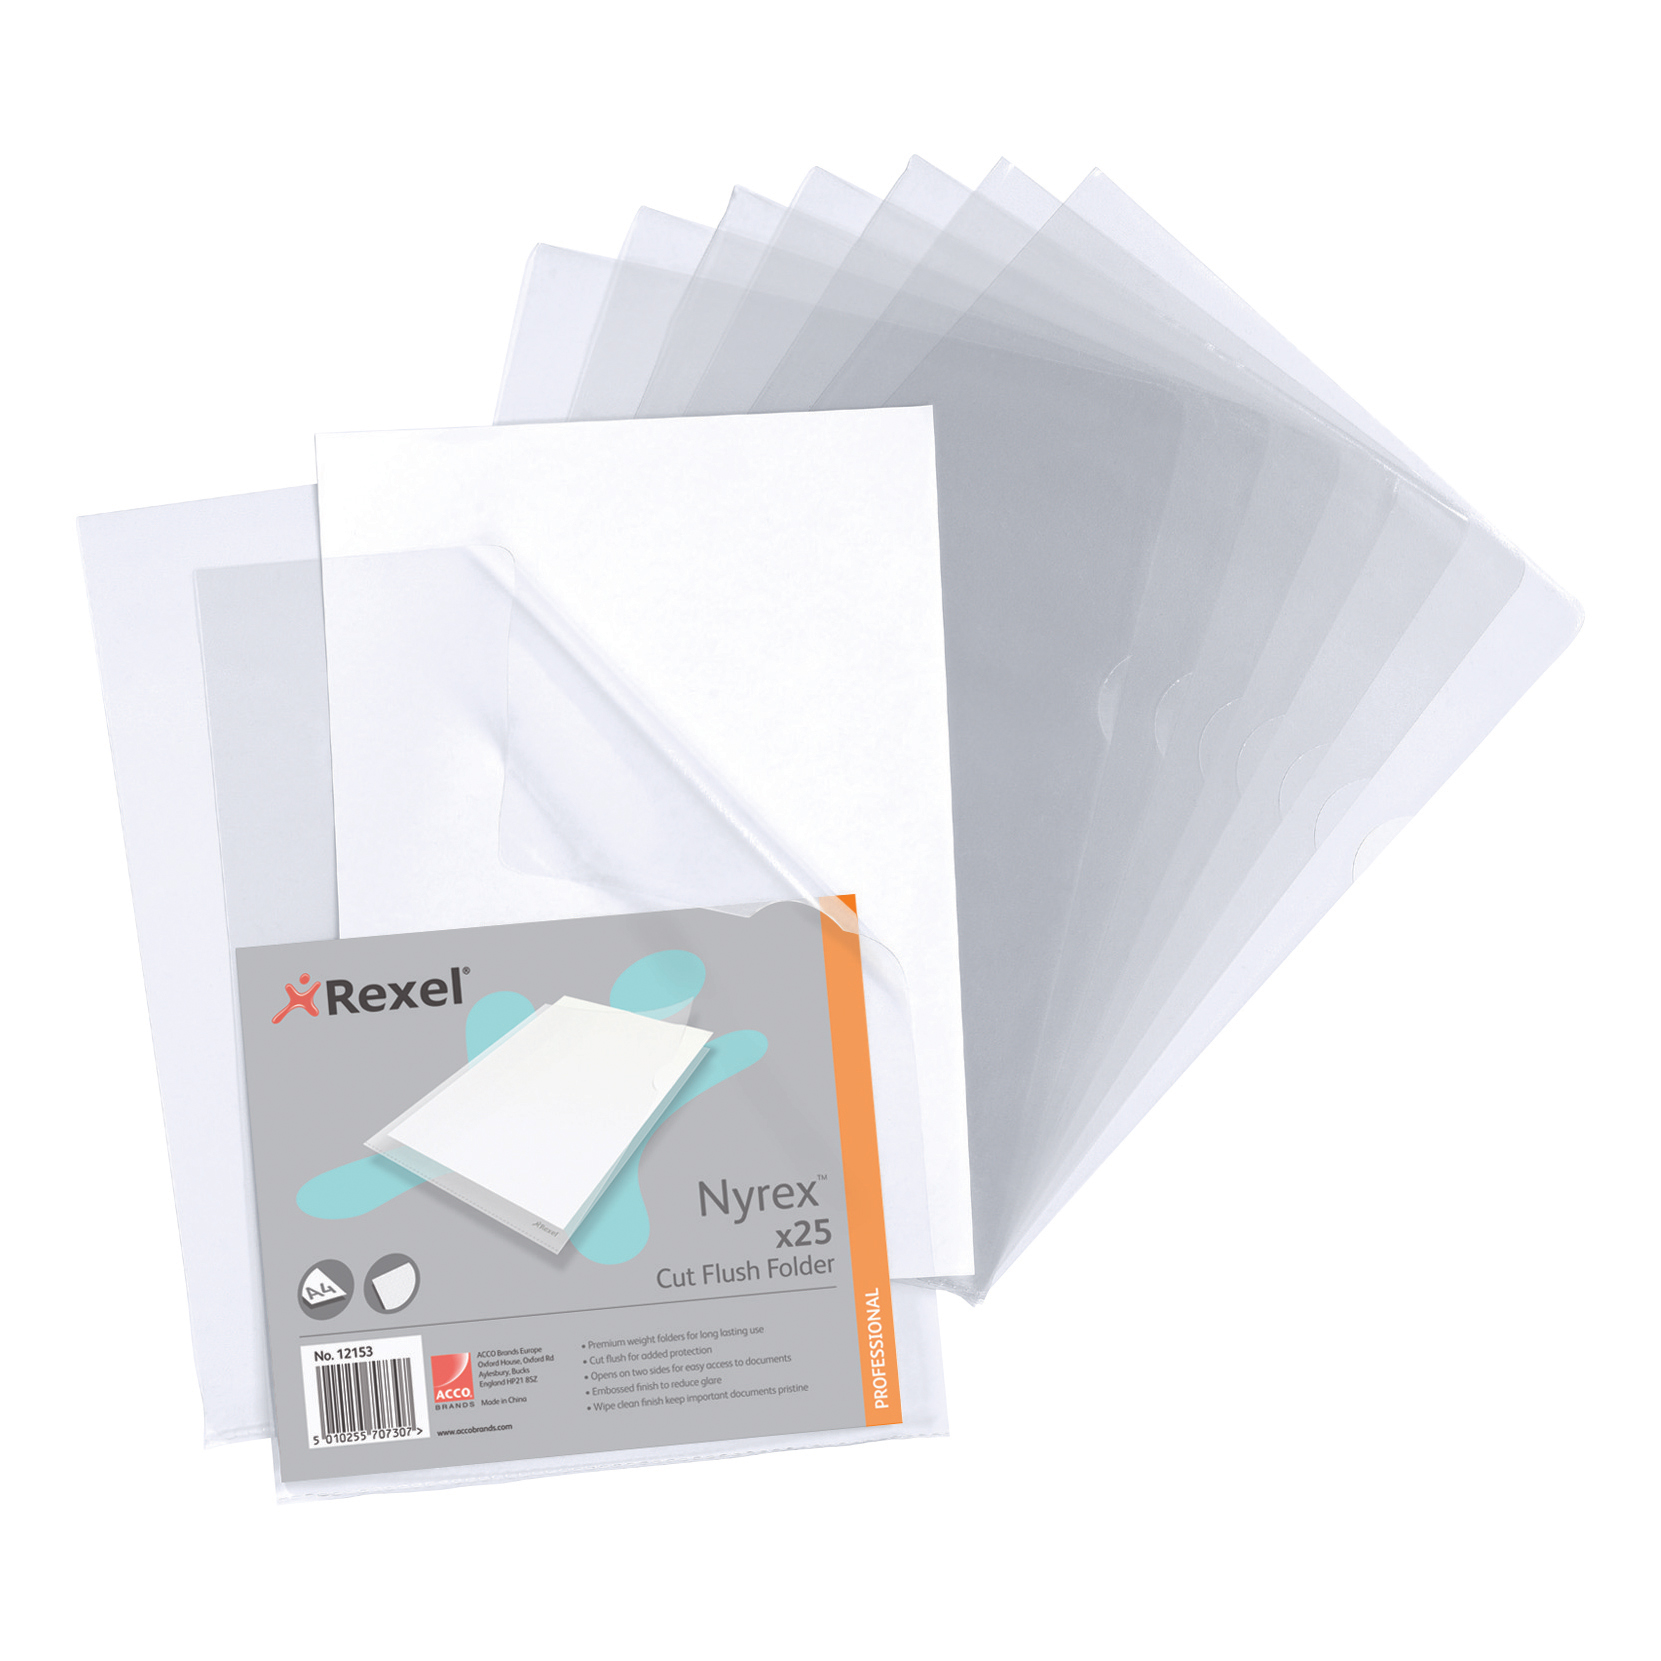 Rexel Nyrex Folder Cut Flush A4 Clear Ref 12153 Pack 25